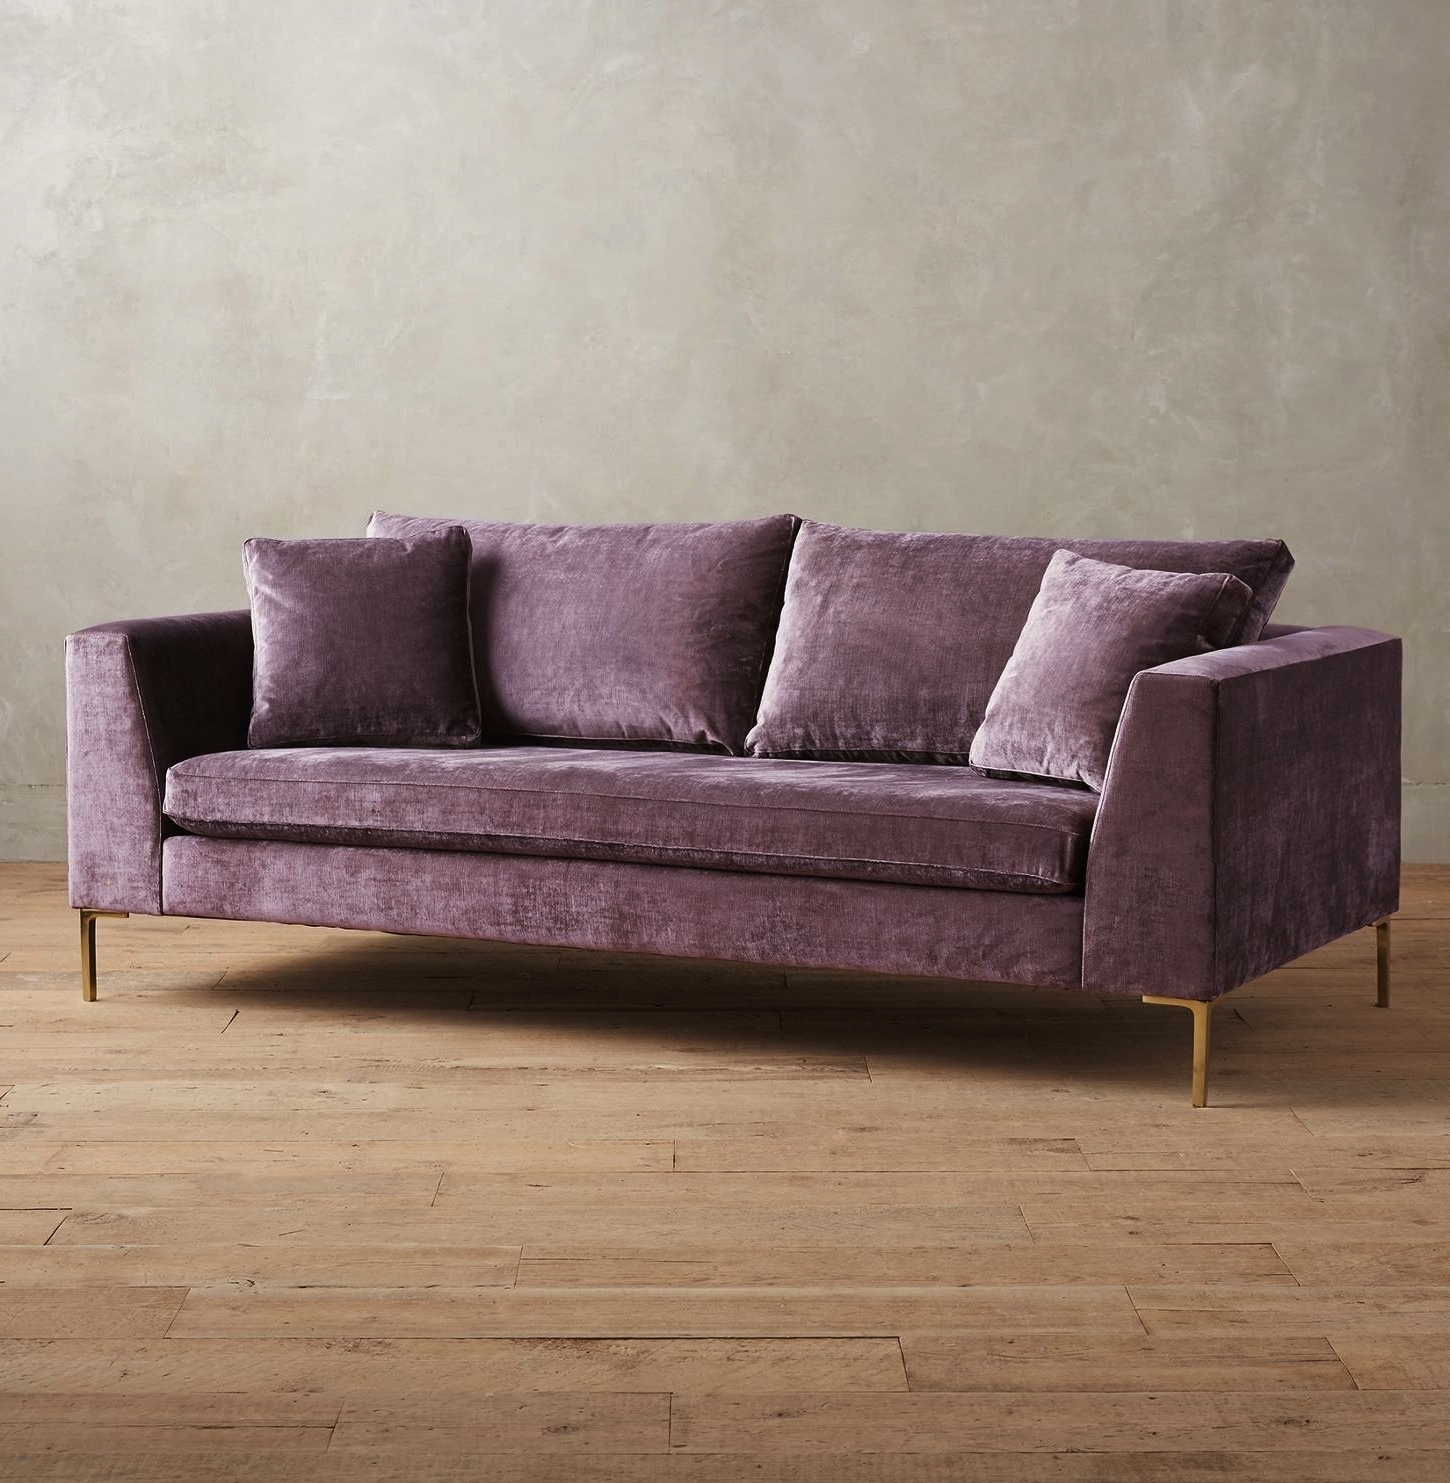 Casa Brooklyn With Well Liked Velvet Purple Sofas (View 13 of 15)